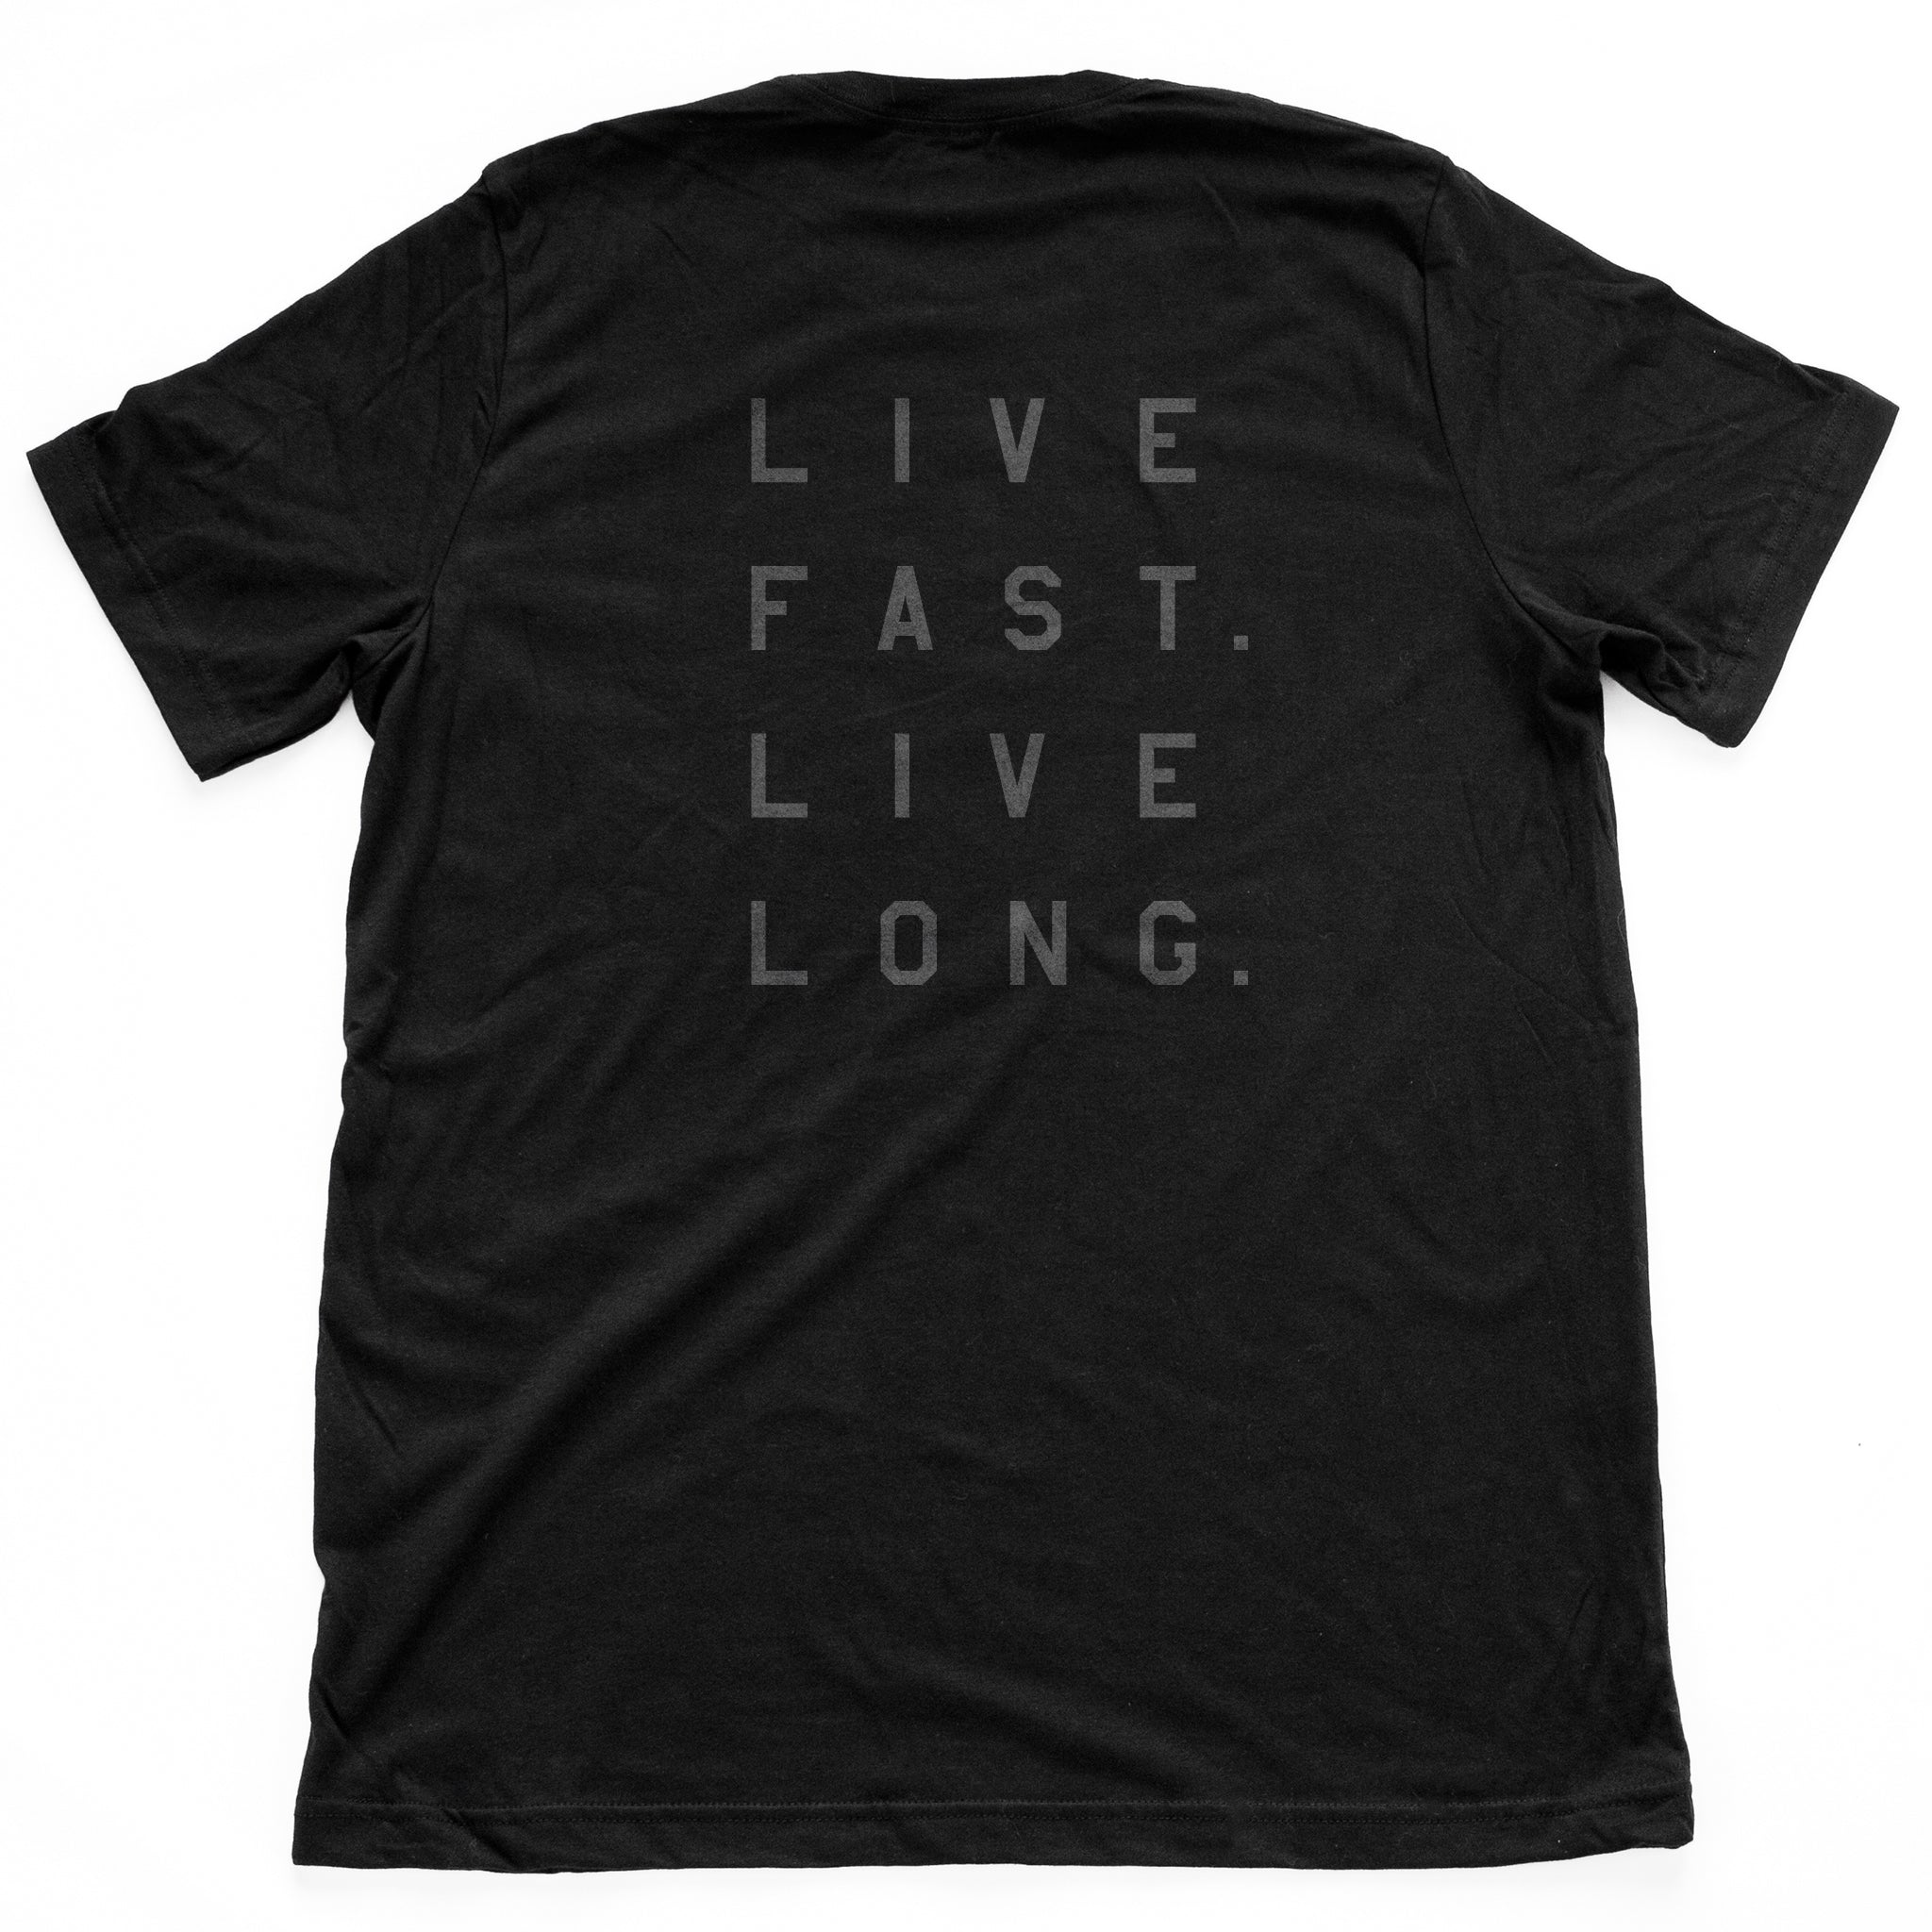 "The back of a classic fashion t-shirt in black, with retro lightning bolt graphic and the Wolfsaint script logo on the front, and bold typography ""Live fast. Live long"" on the back. From wolfsaint.net"